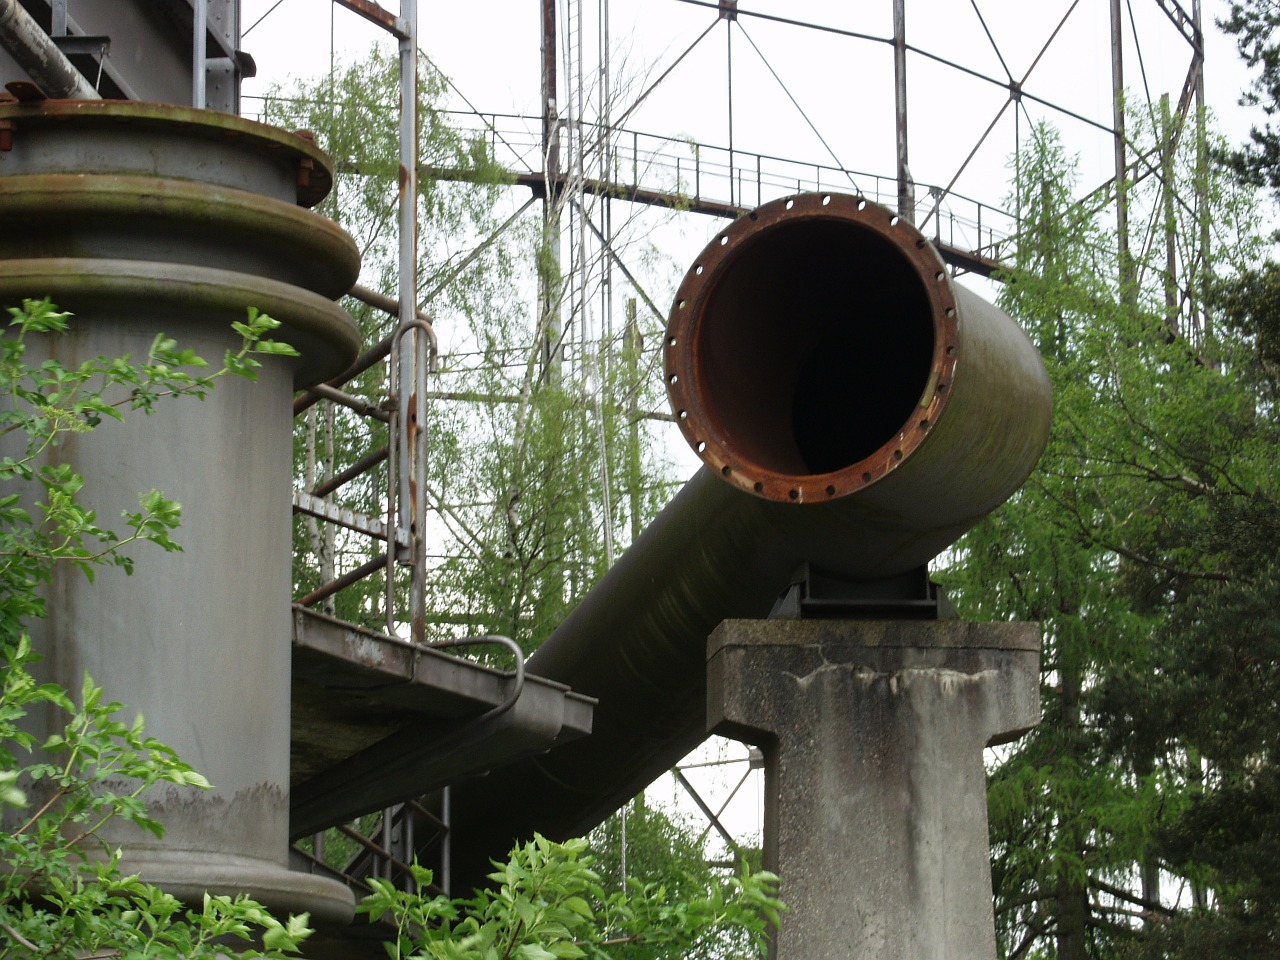 gas-pipe-65755_1280